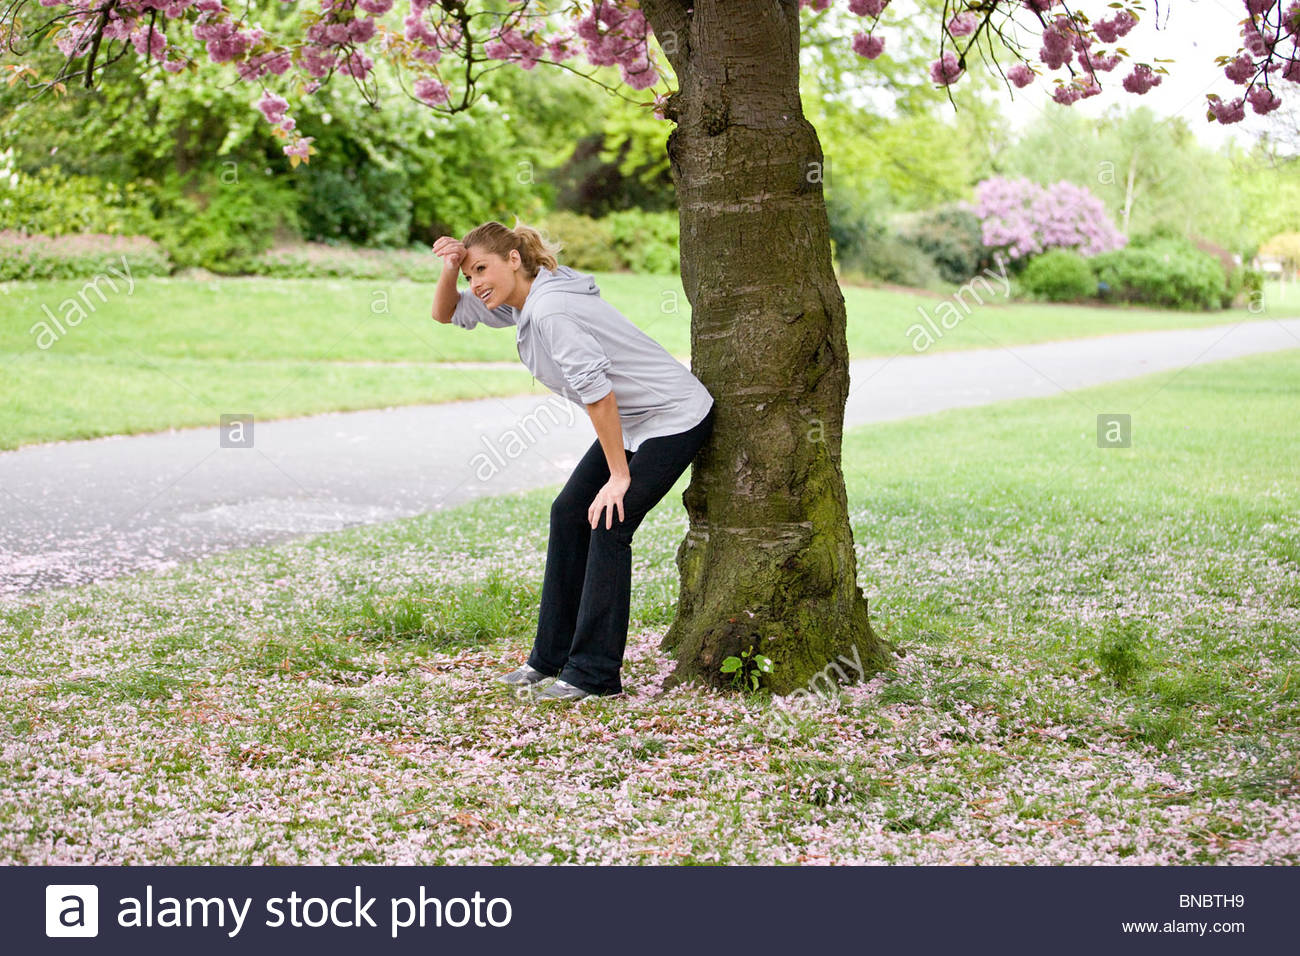 A female runner resting against a tree - Stock Image